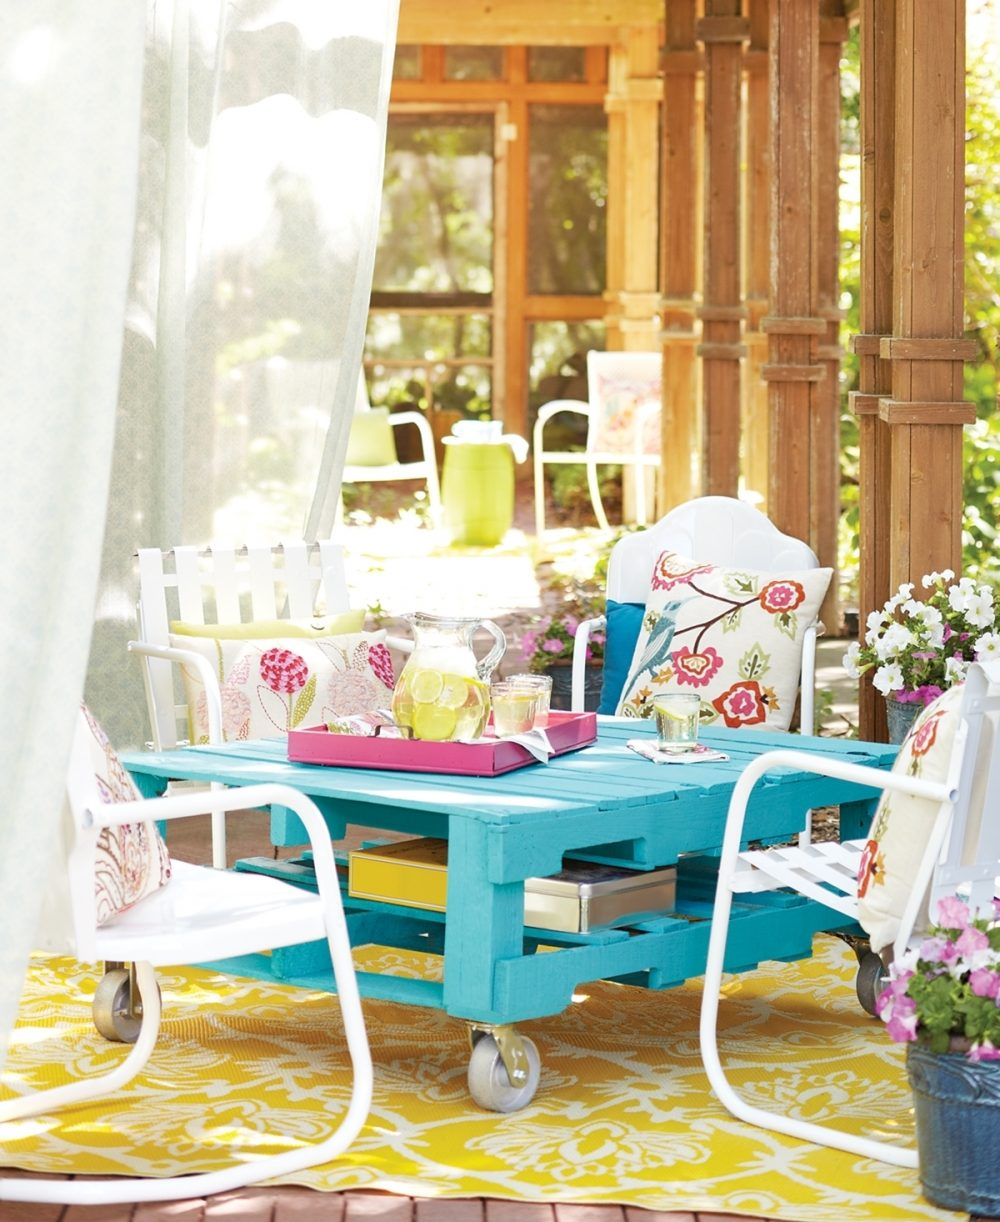 Chairs surround a bright outdoor table made from a pallet.